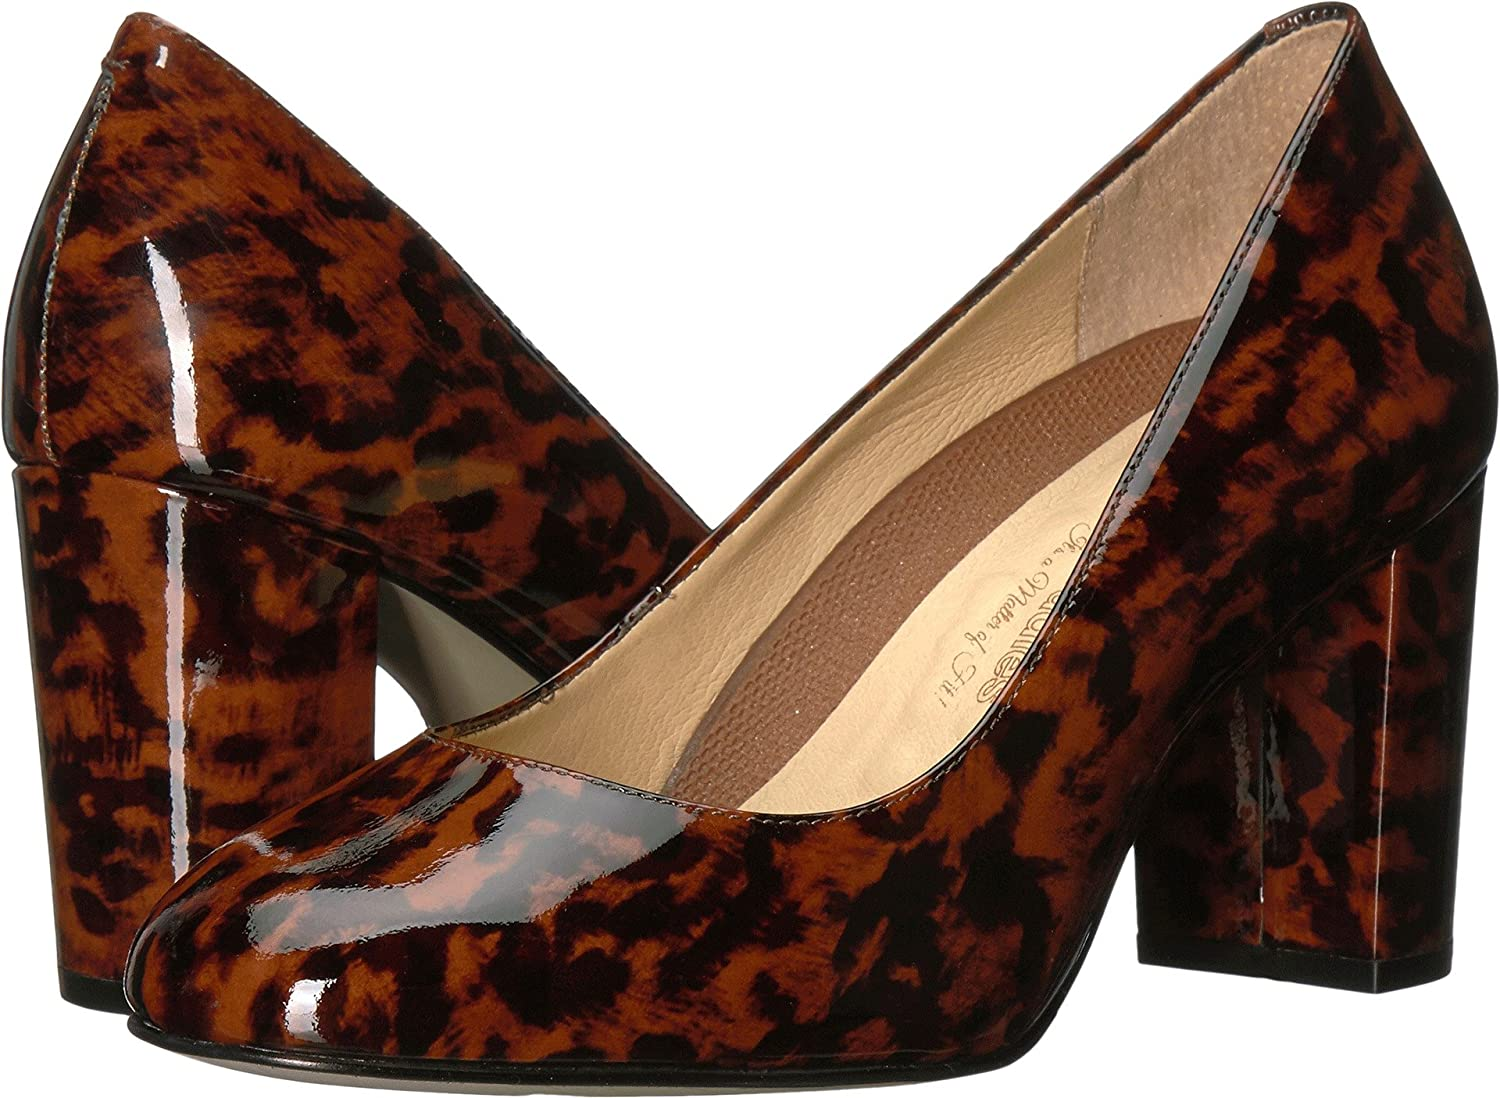 Walking Cradles Women's Matisse Pump Patent B01MZ7BKMA 9.5 WW (EE)|Leopard Patent Pump Leather 62919a